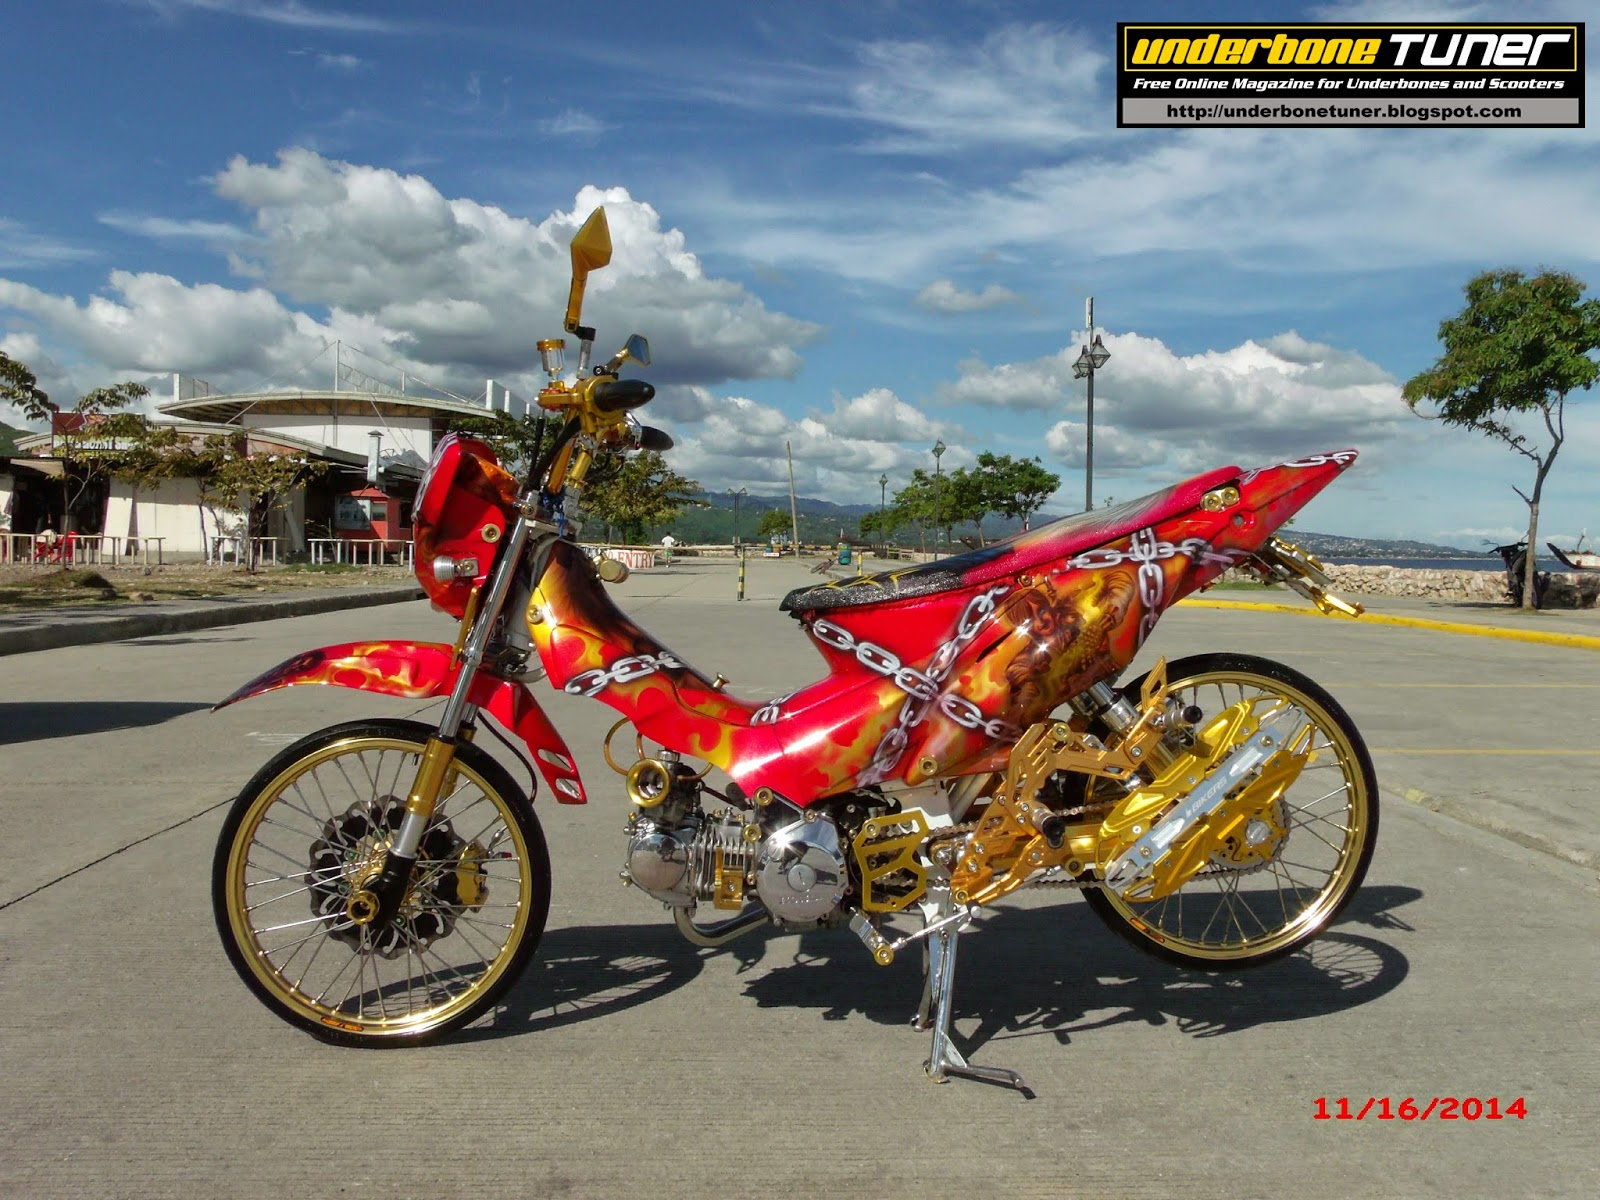 xrm 125 modification underbone tuner modified honda xrm125 ...